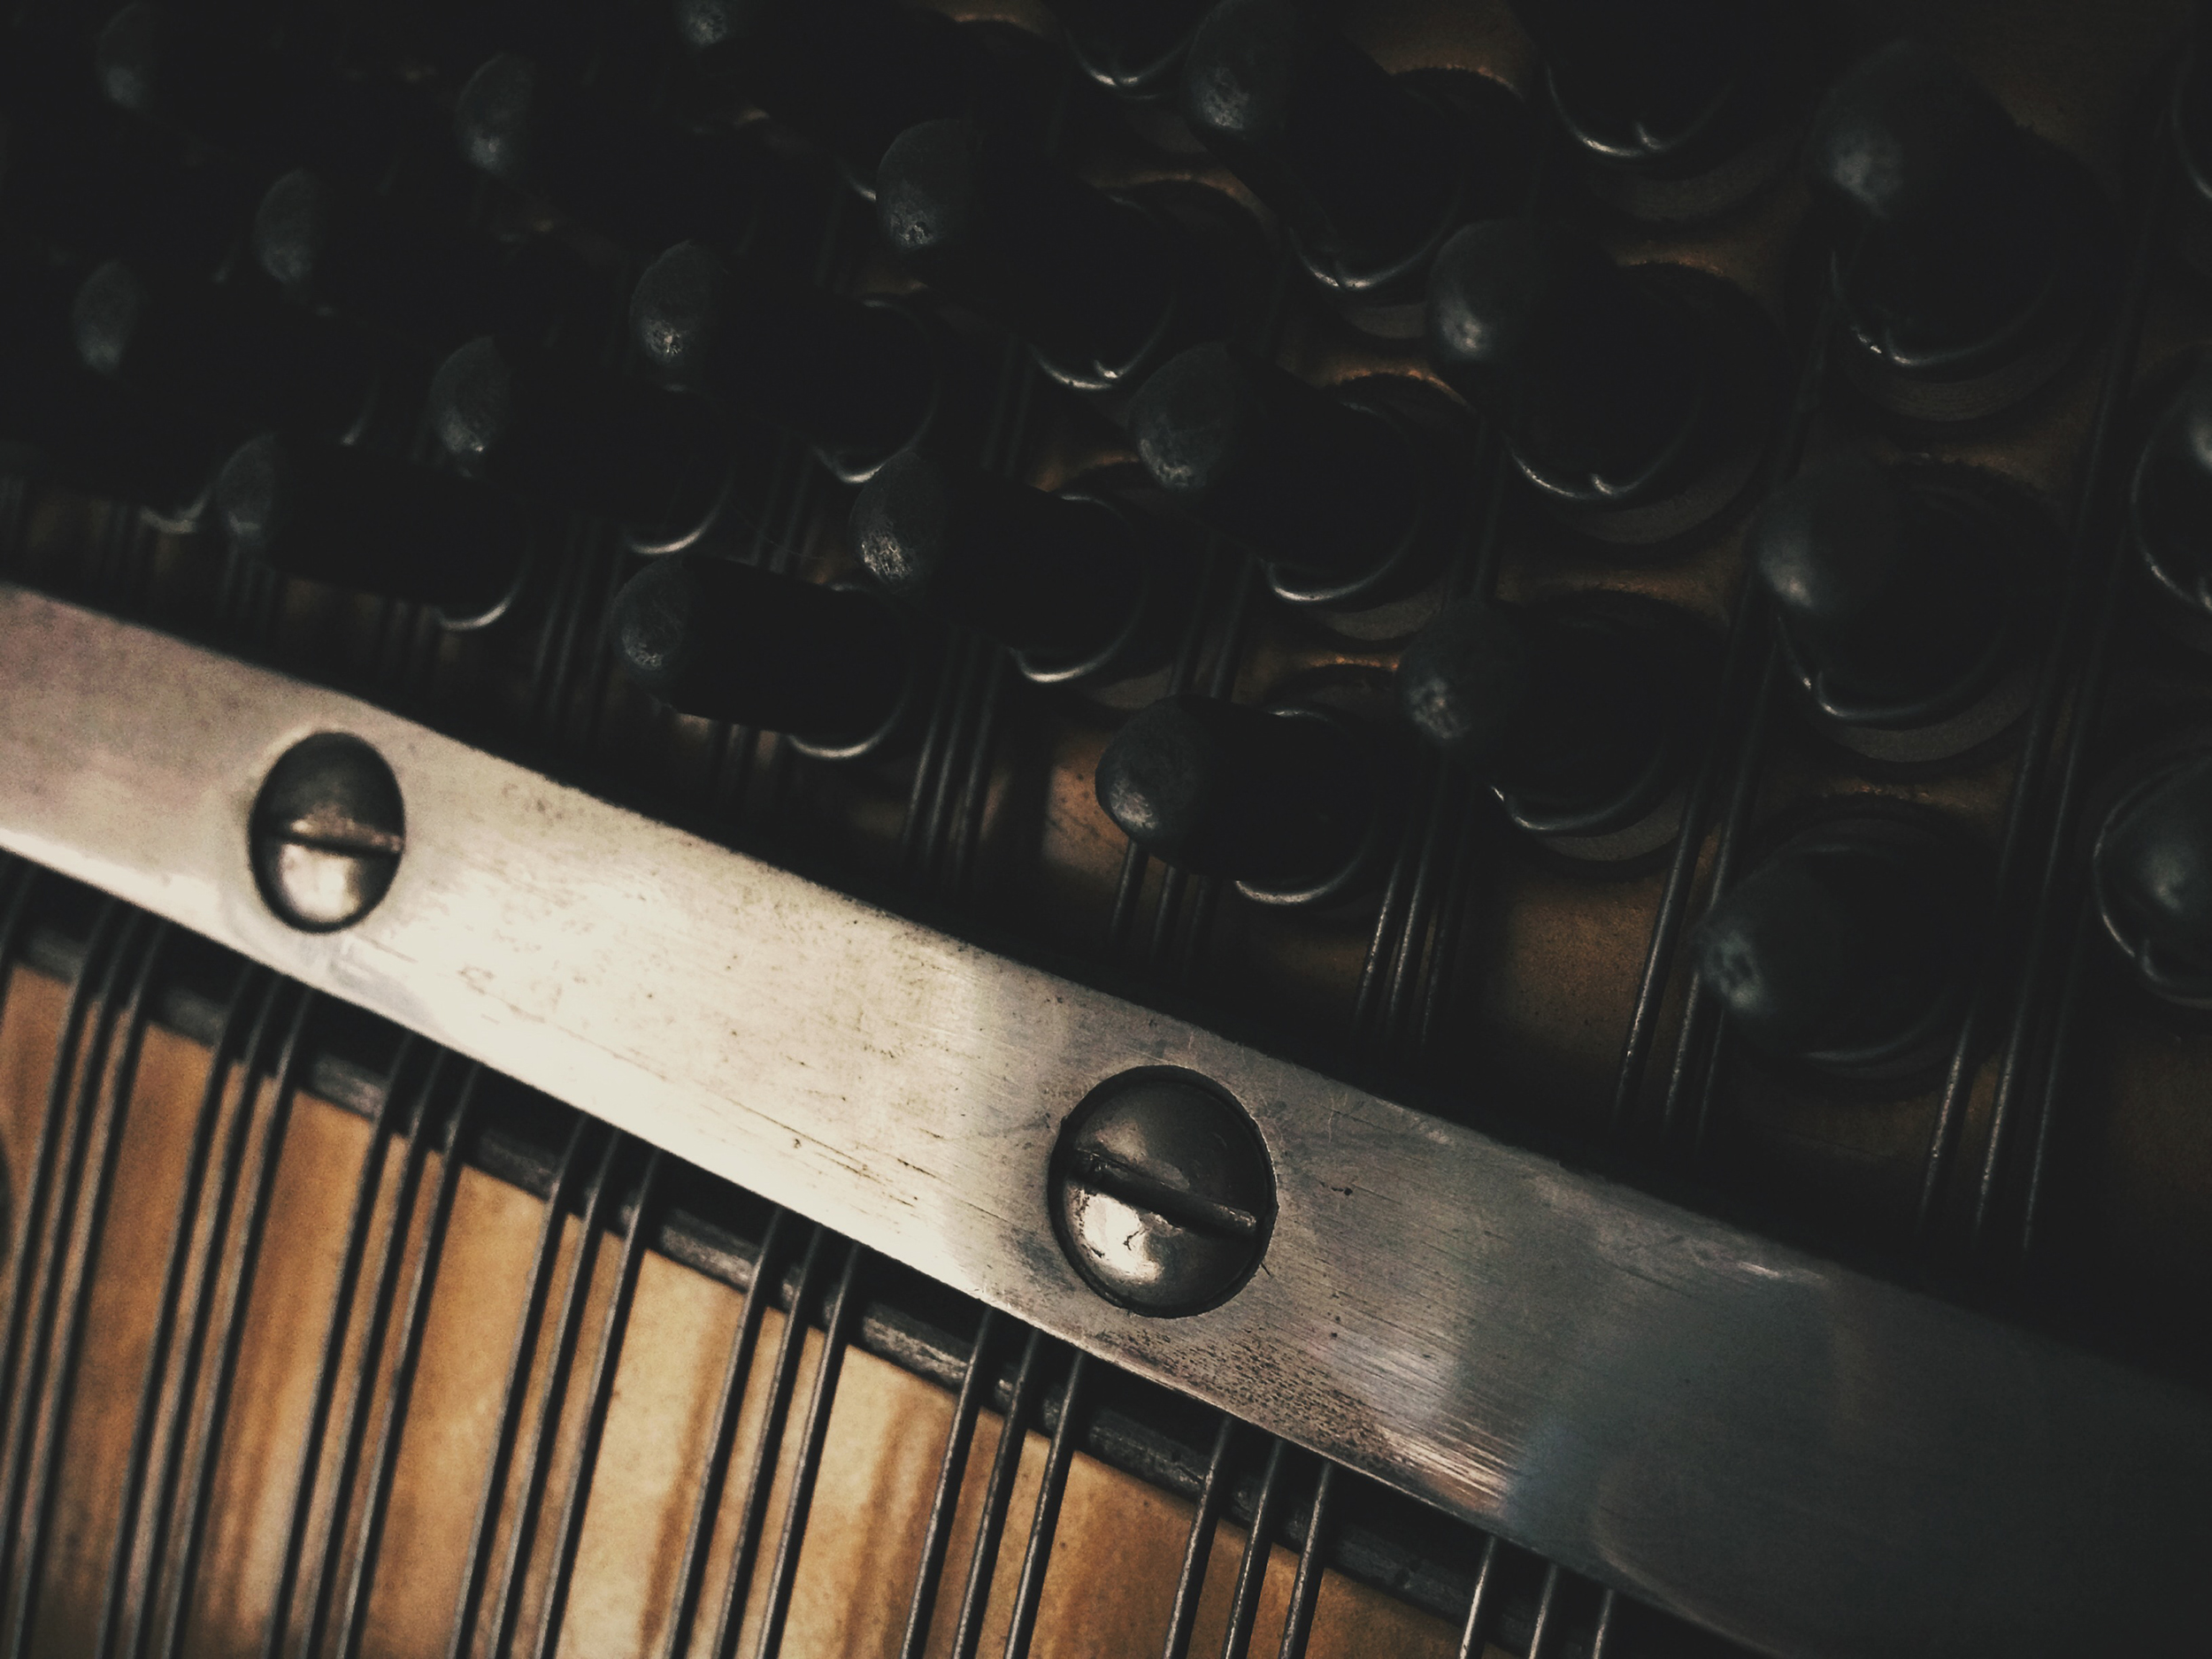 the inner workings of our piano